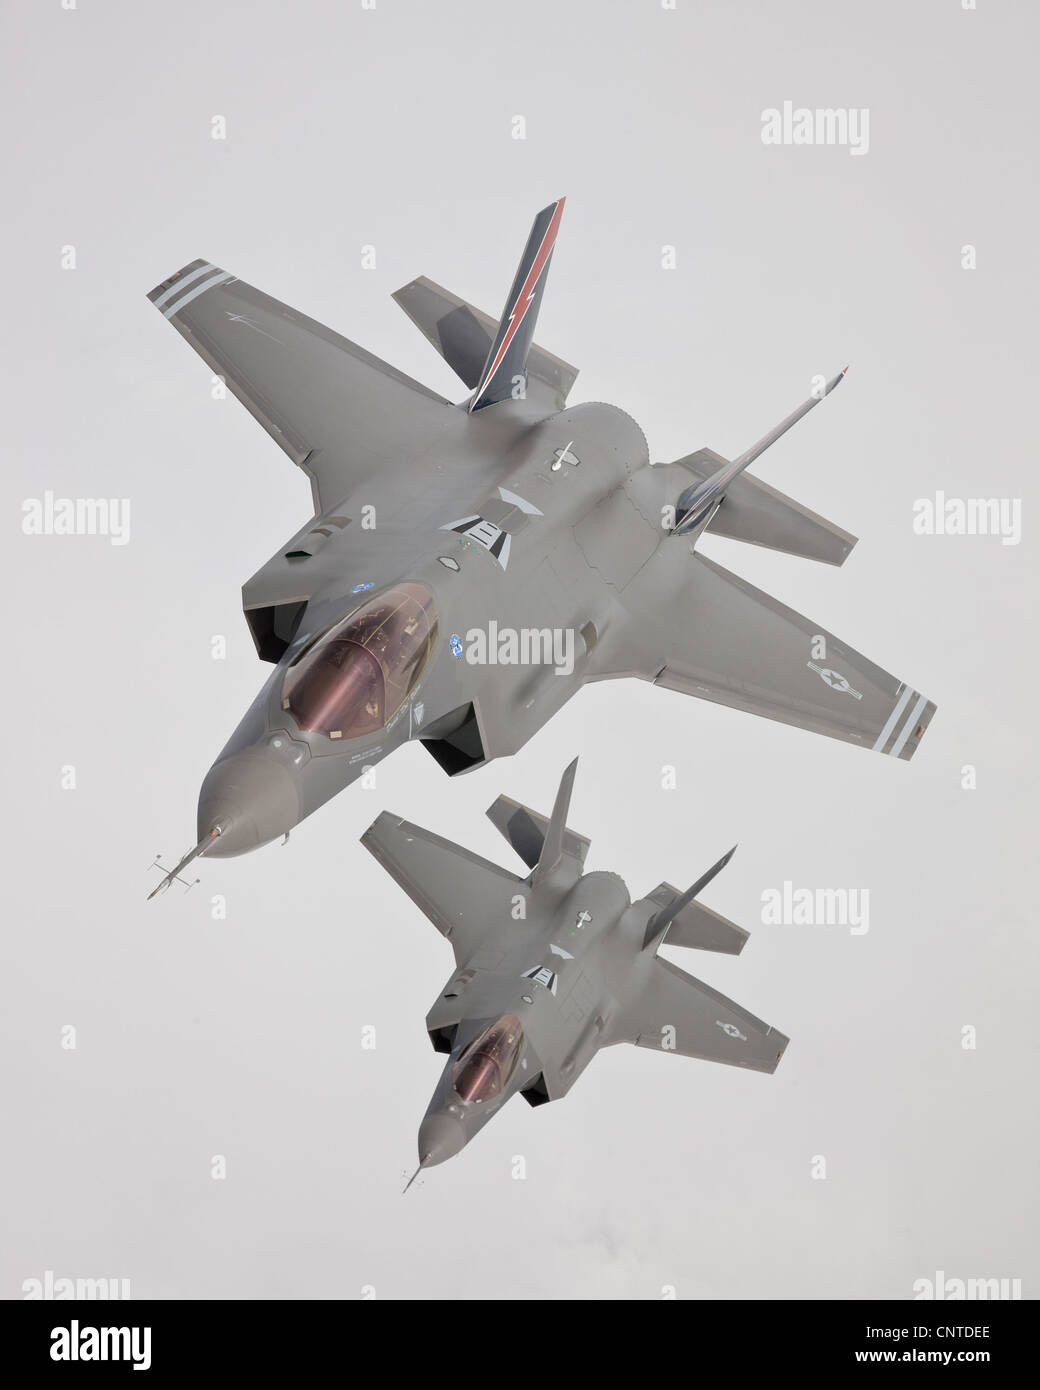 US Air Force F-35 Joint Strike Fighter aircraft in formation April 2, 2011 at Edwards Air Force Base, CA. - Stock Image